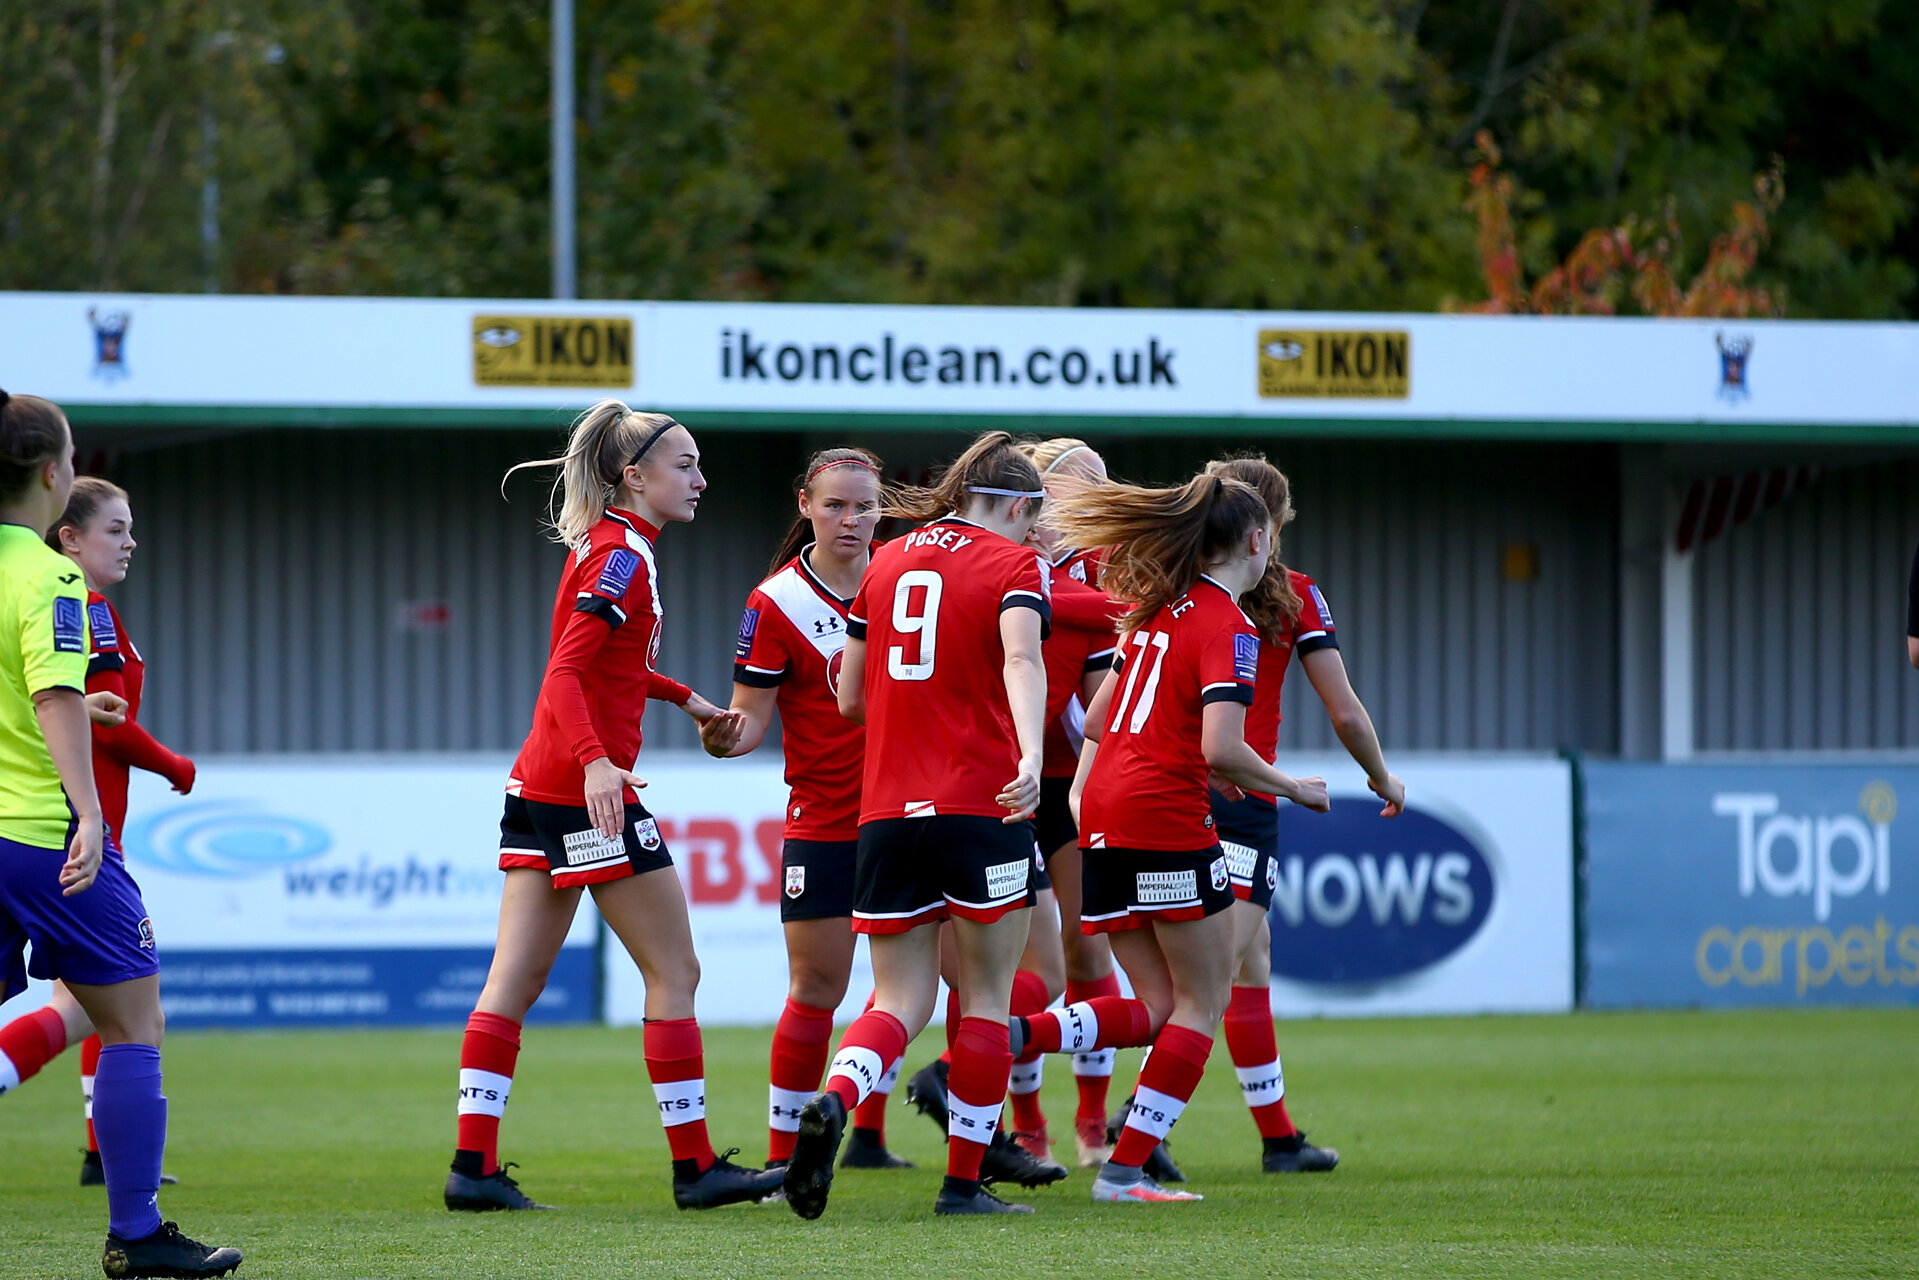 SOUTHAMPTON, ENGLAND - OCTOBER 11: during FAWNL match between Southampton Women and Exeter City at Snows Stadium on October 11, 2020 in Southampton, England. (Photo by Isabelle Field/Southampton FC via Getty Images)